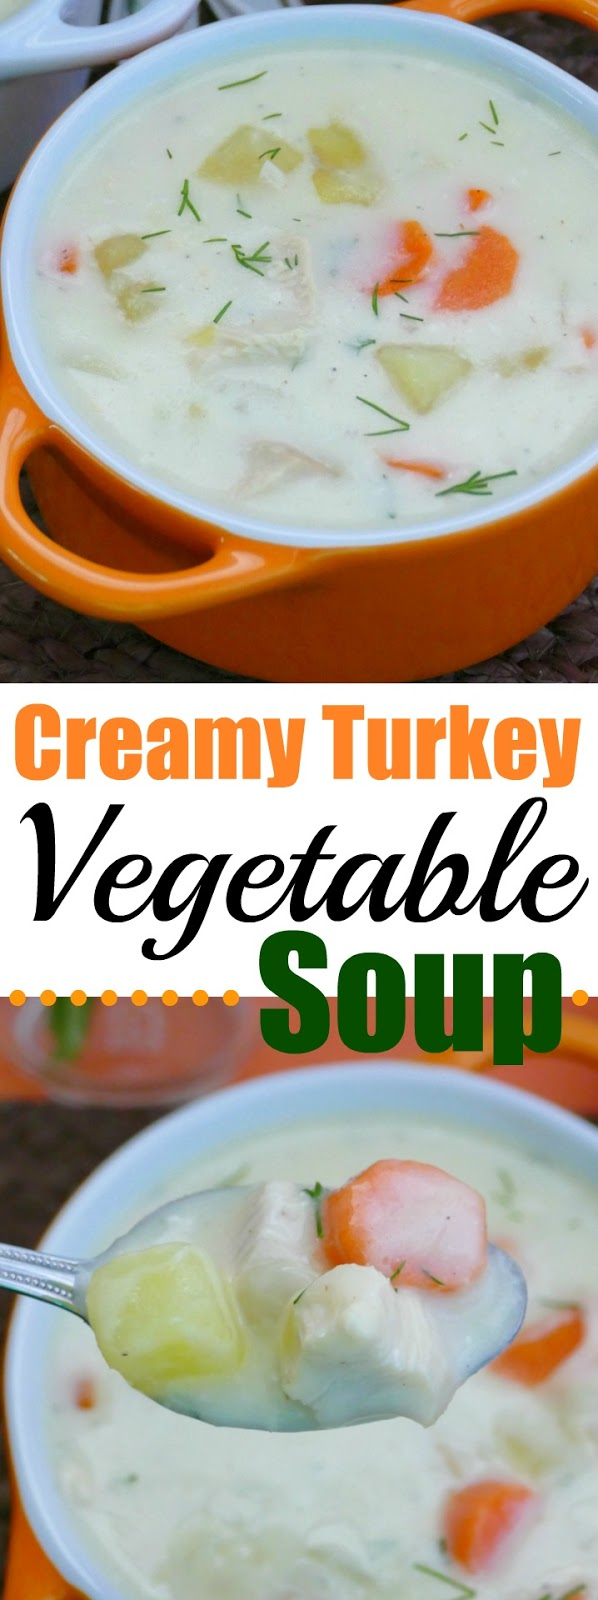 If you have leftover turkey after the holidays, give this delicious cream soup a try! The dill and cream cheese give this soup a unique flavor and the potatoes and carrots make it SO hearty! Also great with leftover rotisserie chicken!